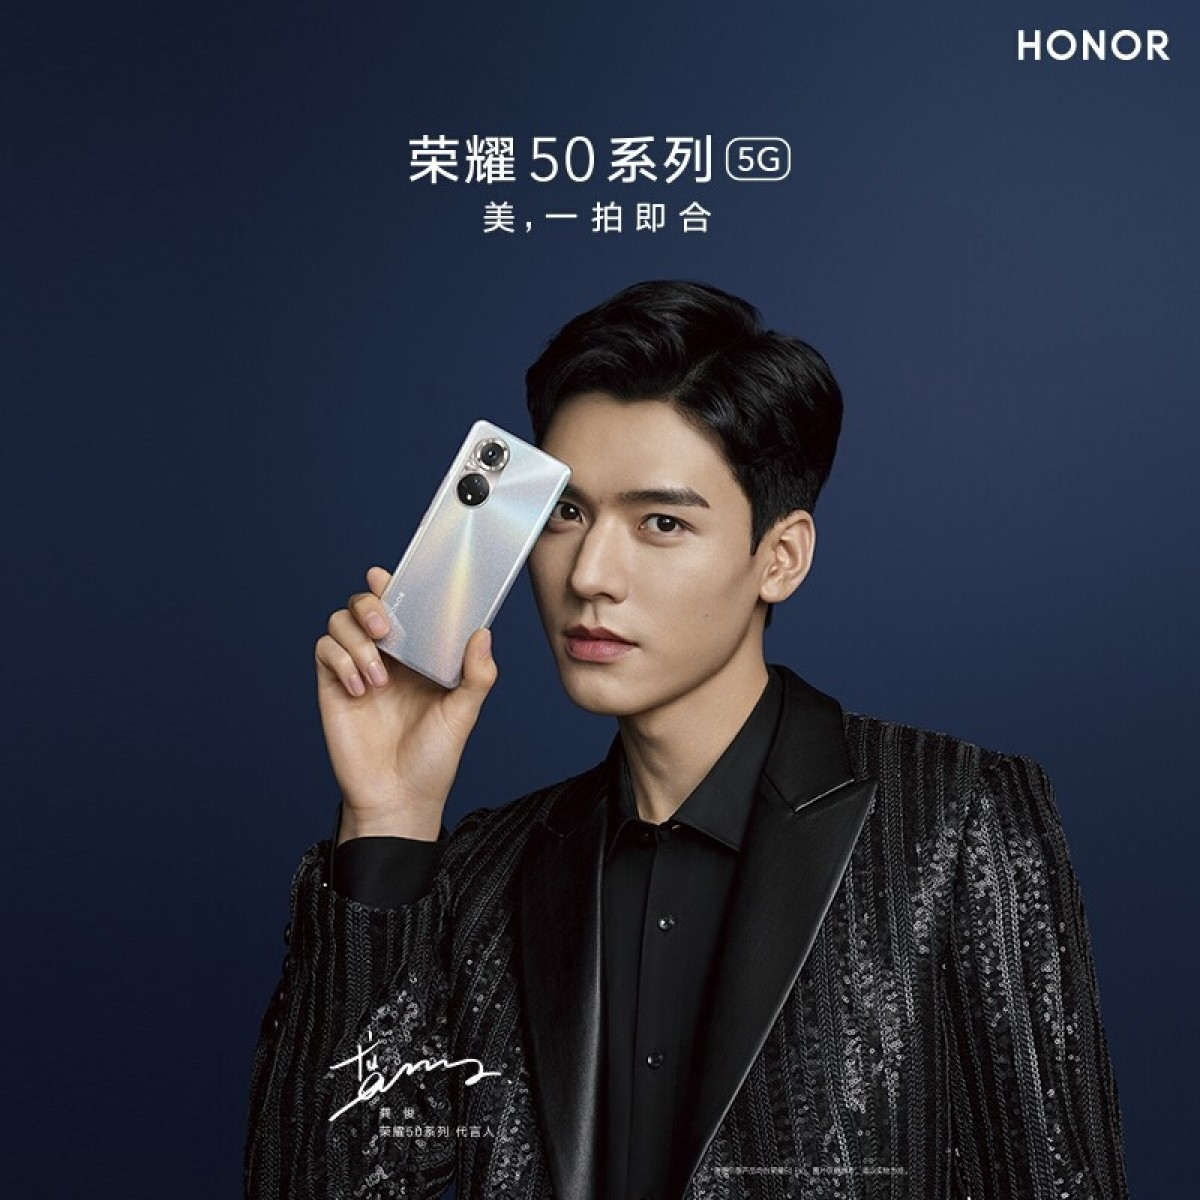 Honor 50 camera finally revealed in official teasers